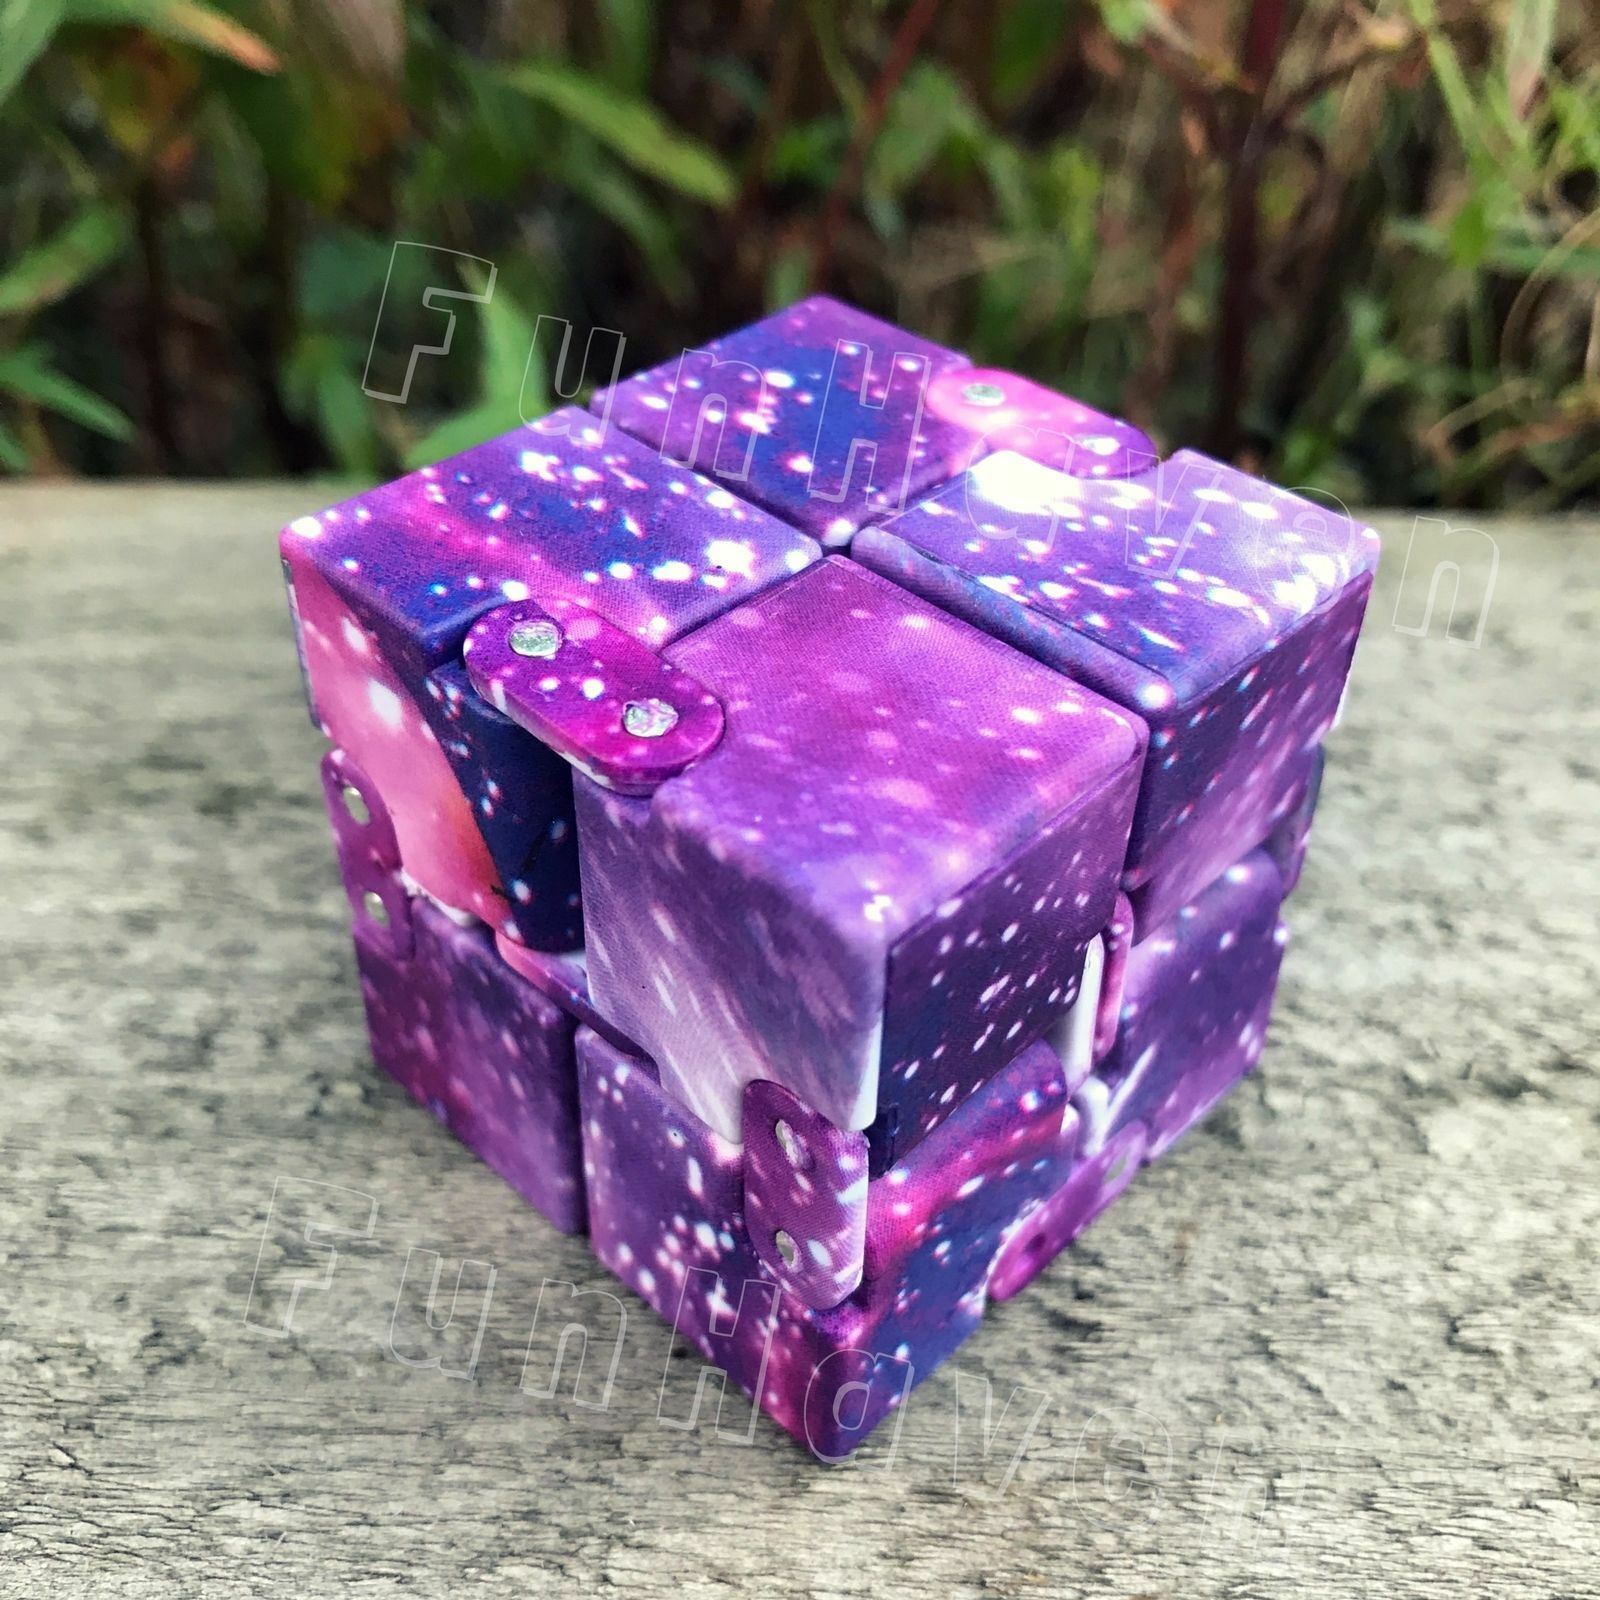 Sensory-Infinity-Cube-Stress-Fidget-Toys-for-Autism-Anxiety-Relief-Kids-Adult-UK thumbnail 21